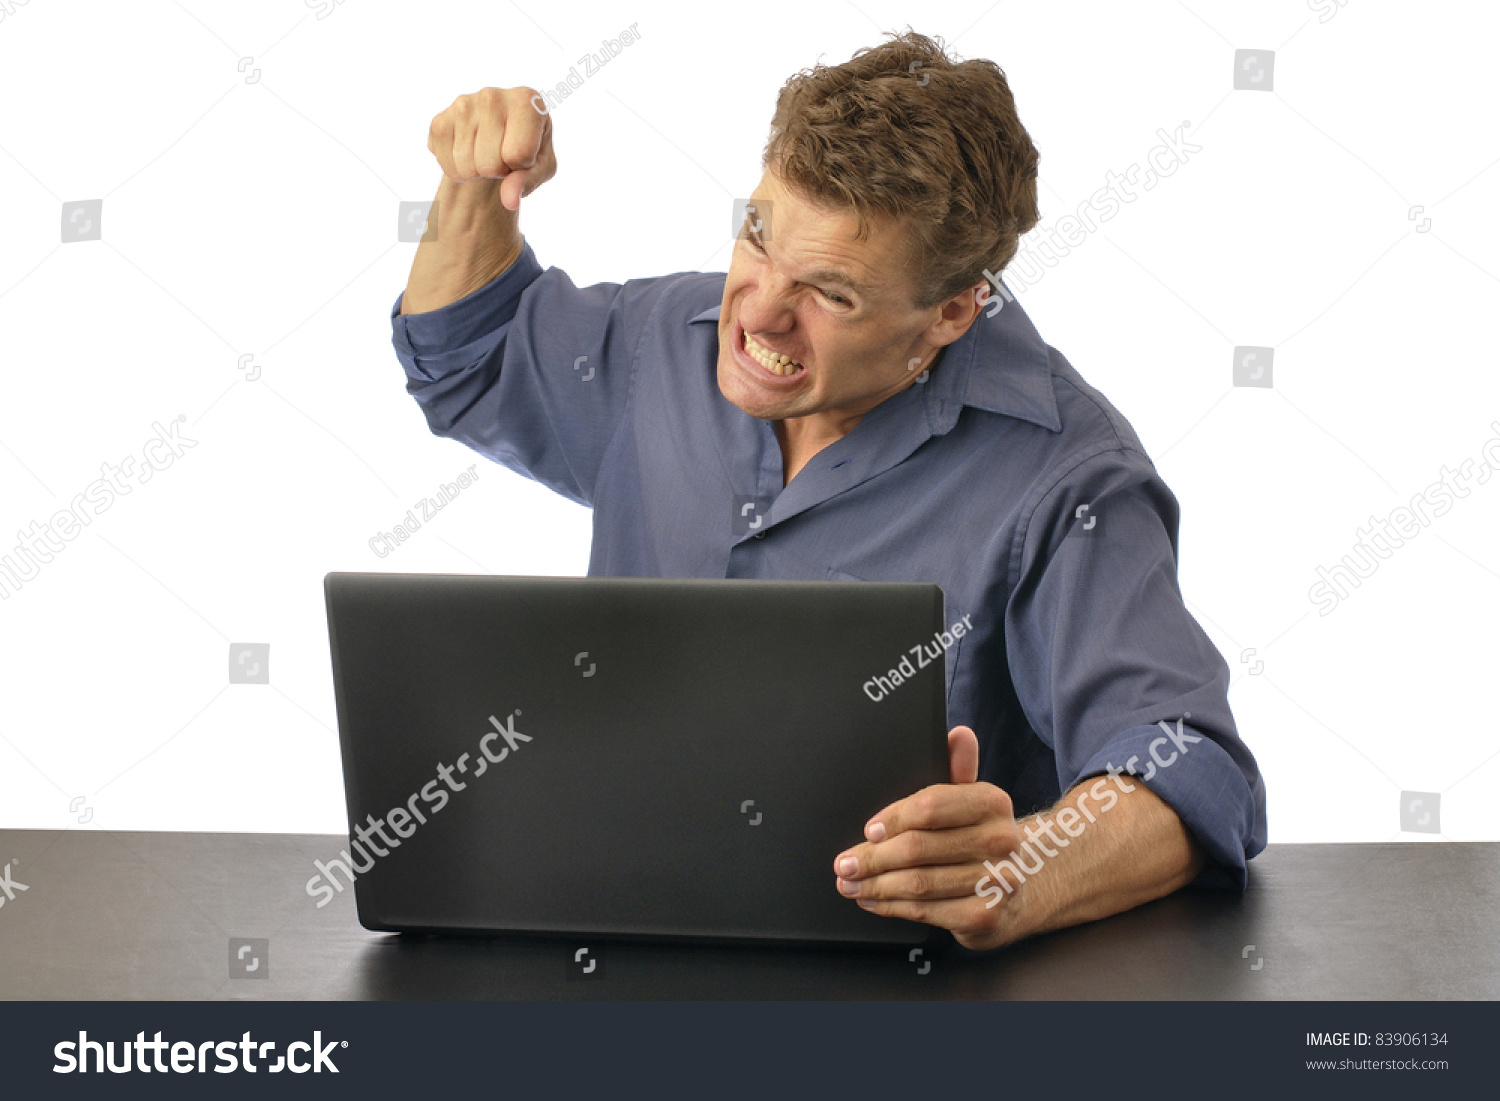 http://image.shutterstock.com/z/stock-photo-angry-man-punching-computer-isolated-on-white-background-83906134.jpg